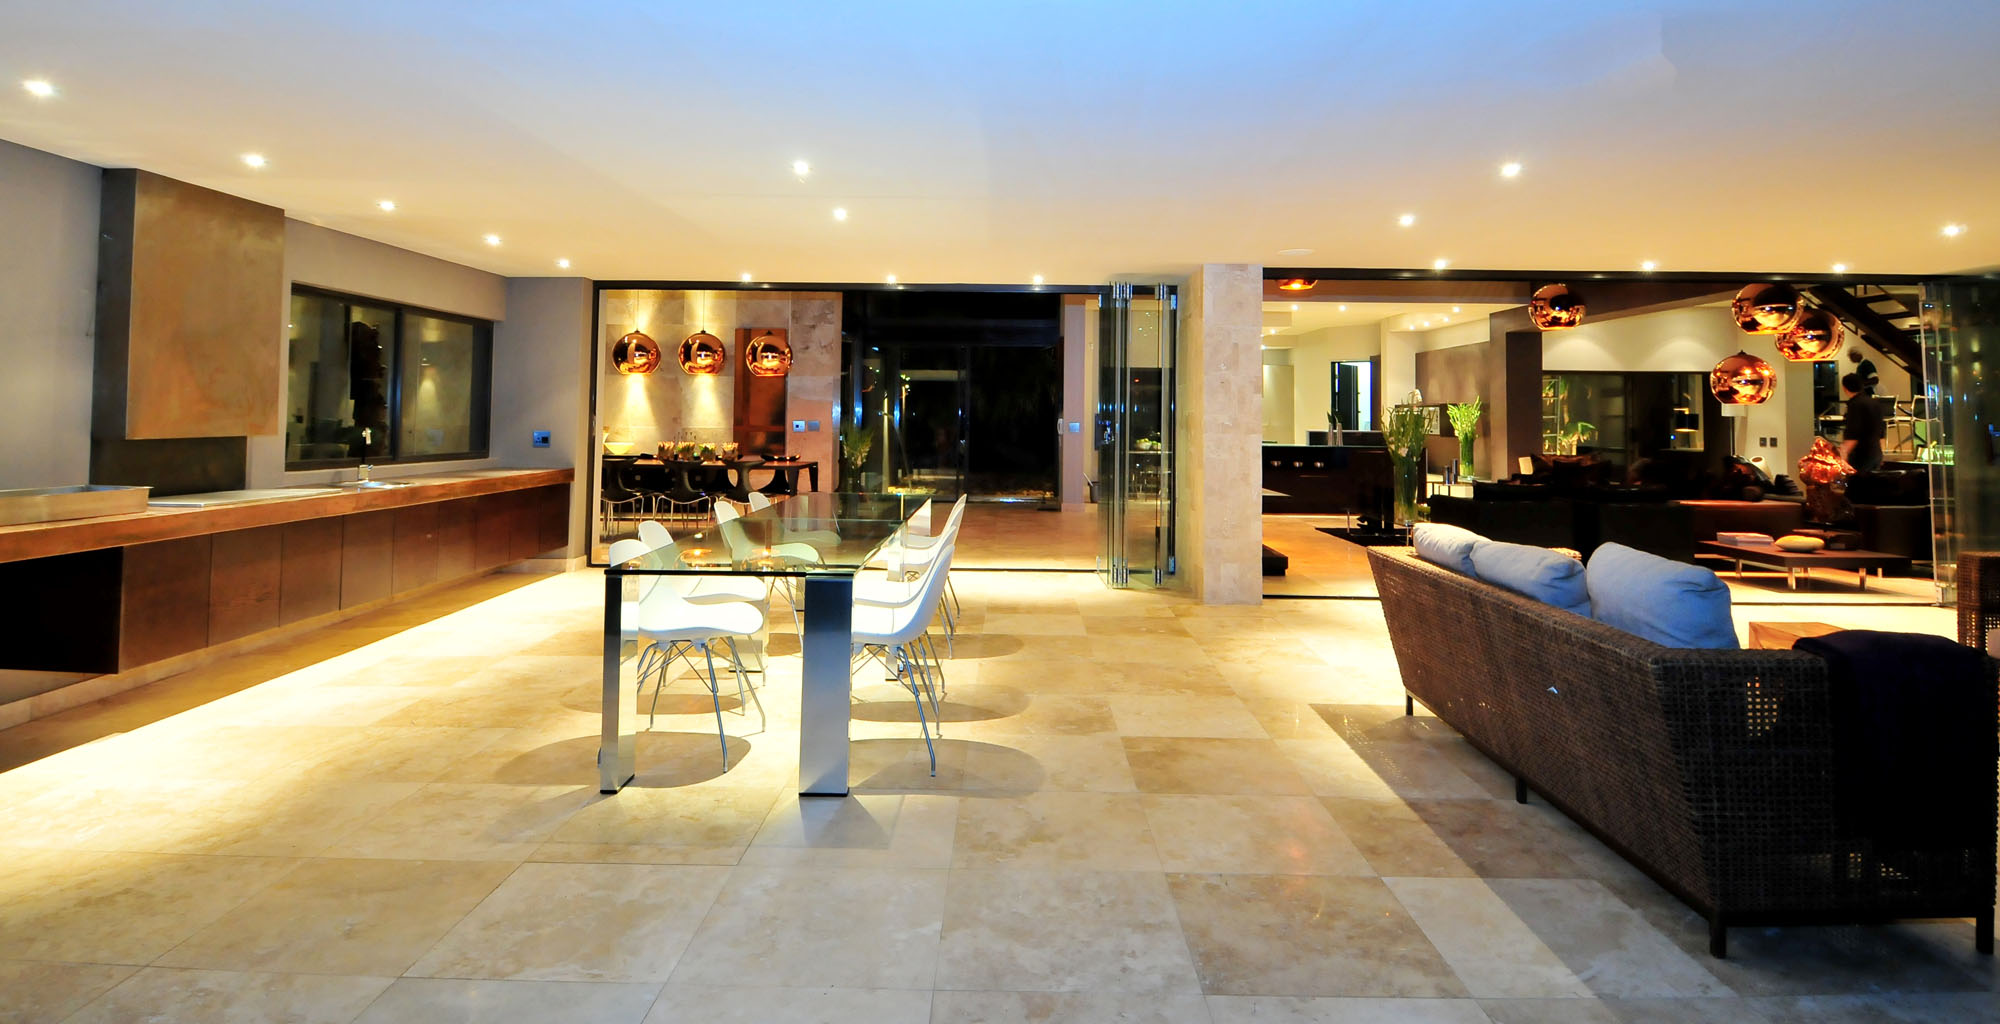 decor house 2 pretty design decor house lam nico van der meulen decor house Brian-Road-34